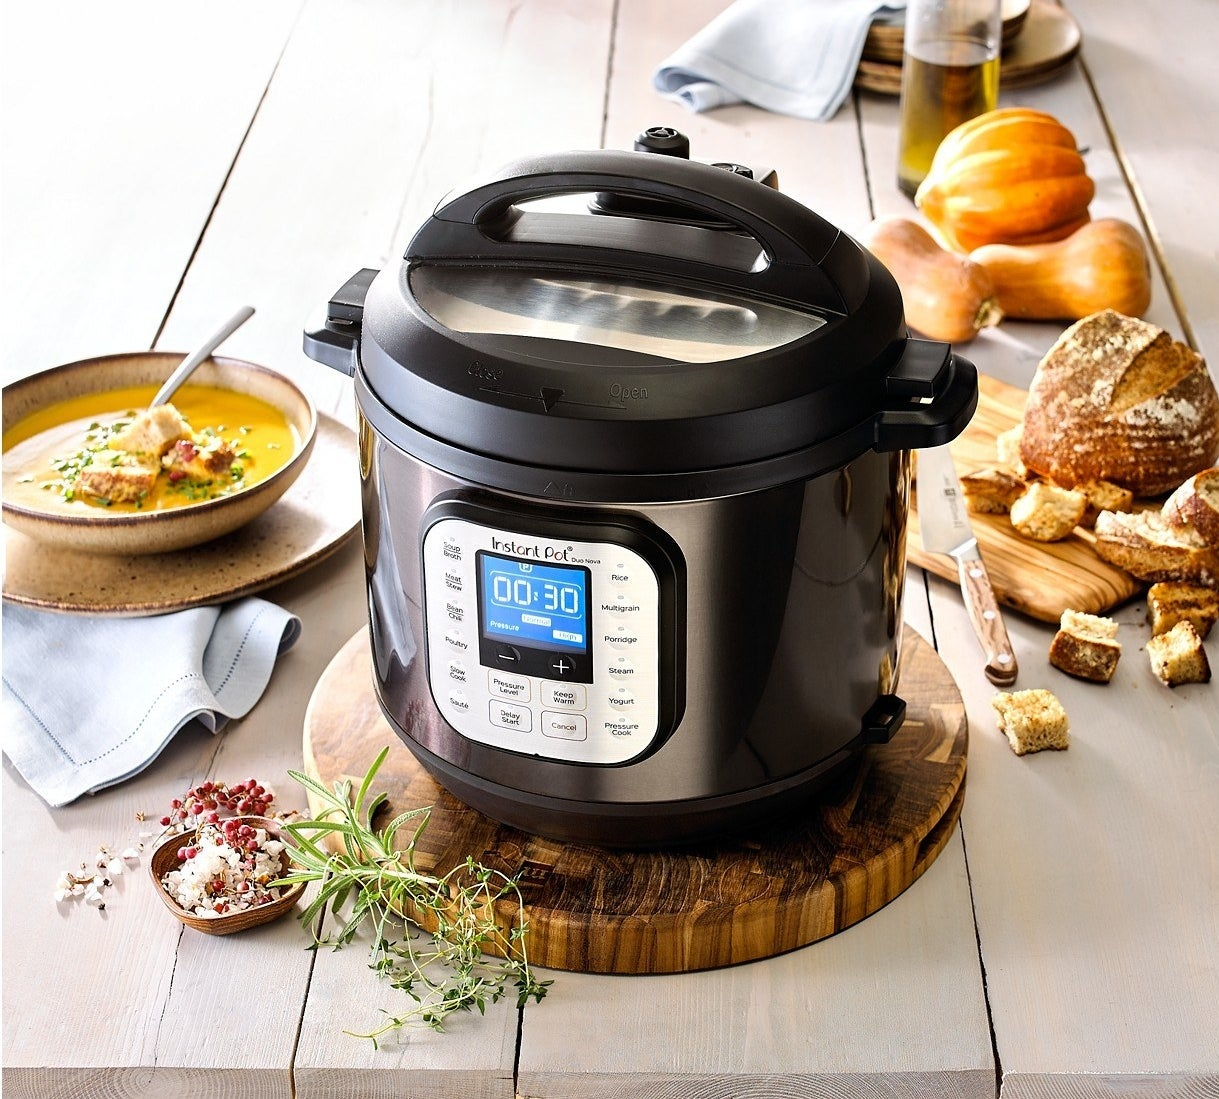 Black stainless steel Instant Pot on table next to bowl of food